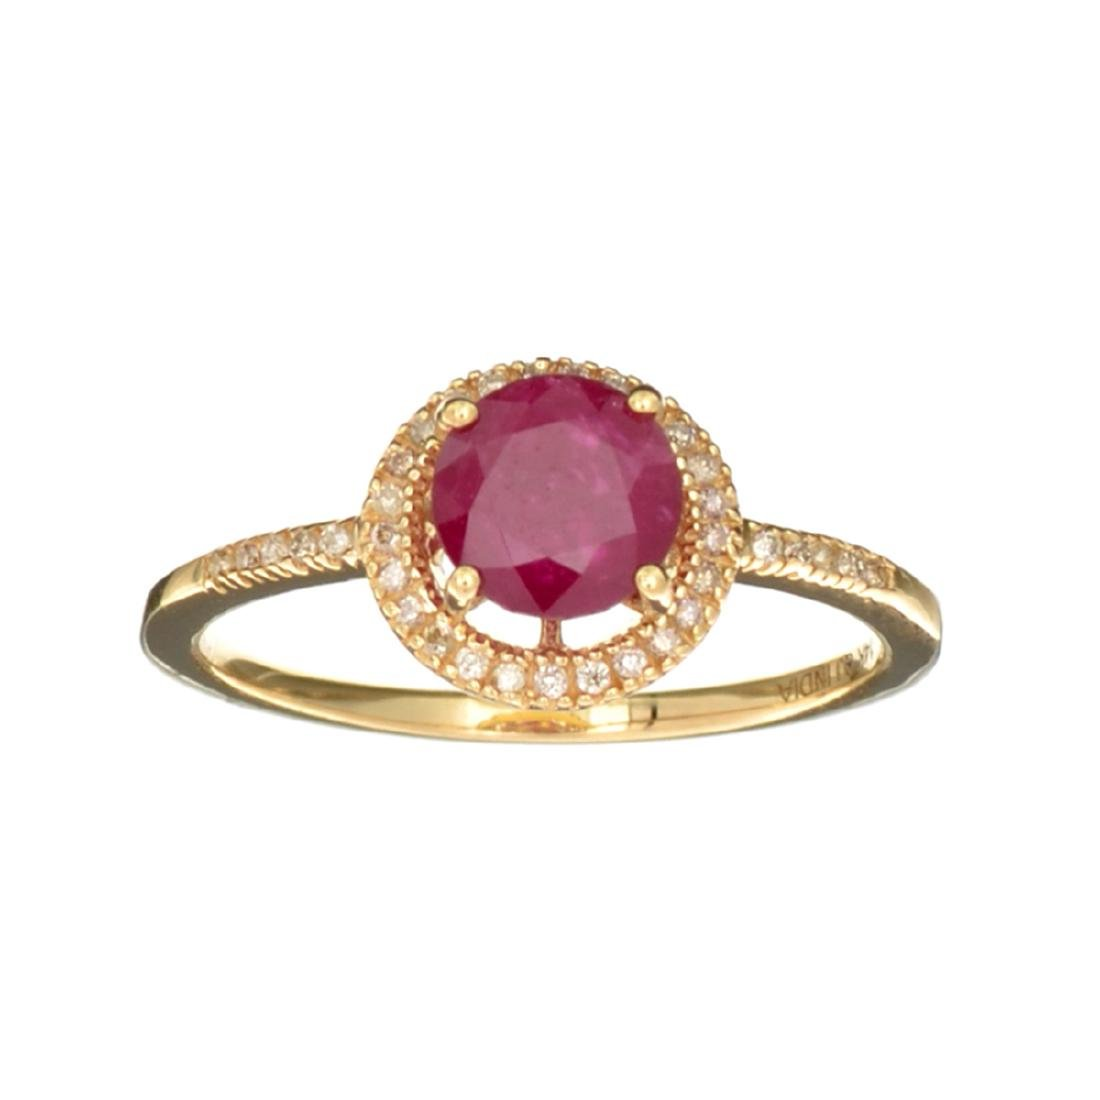 Designer Sebastian 14KT Gold, 1.25CT Round Cut Ruby and